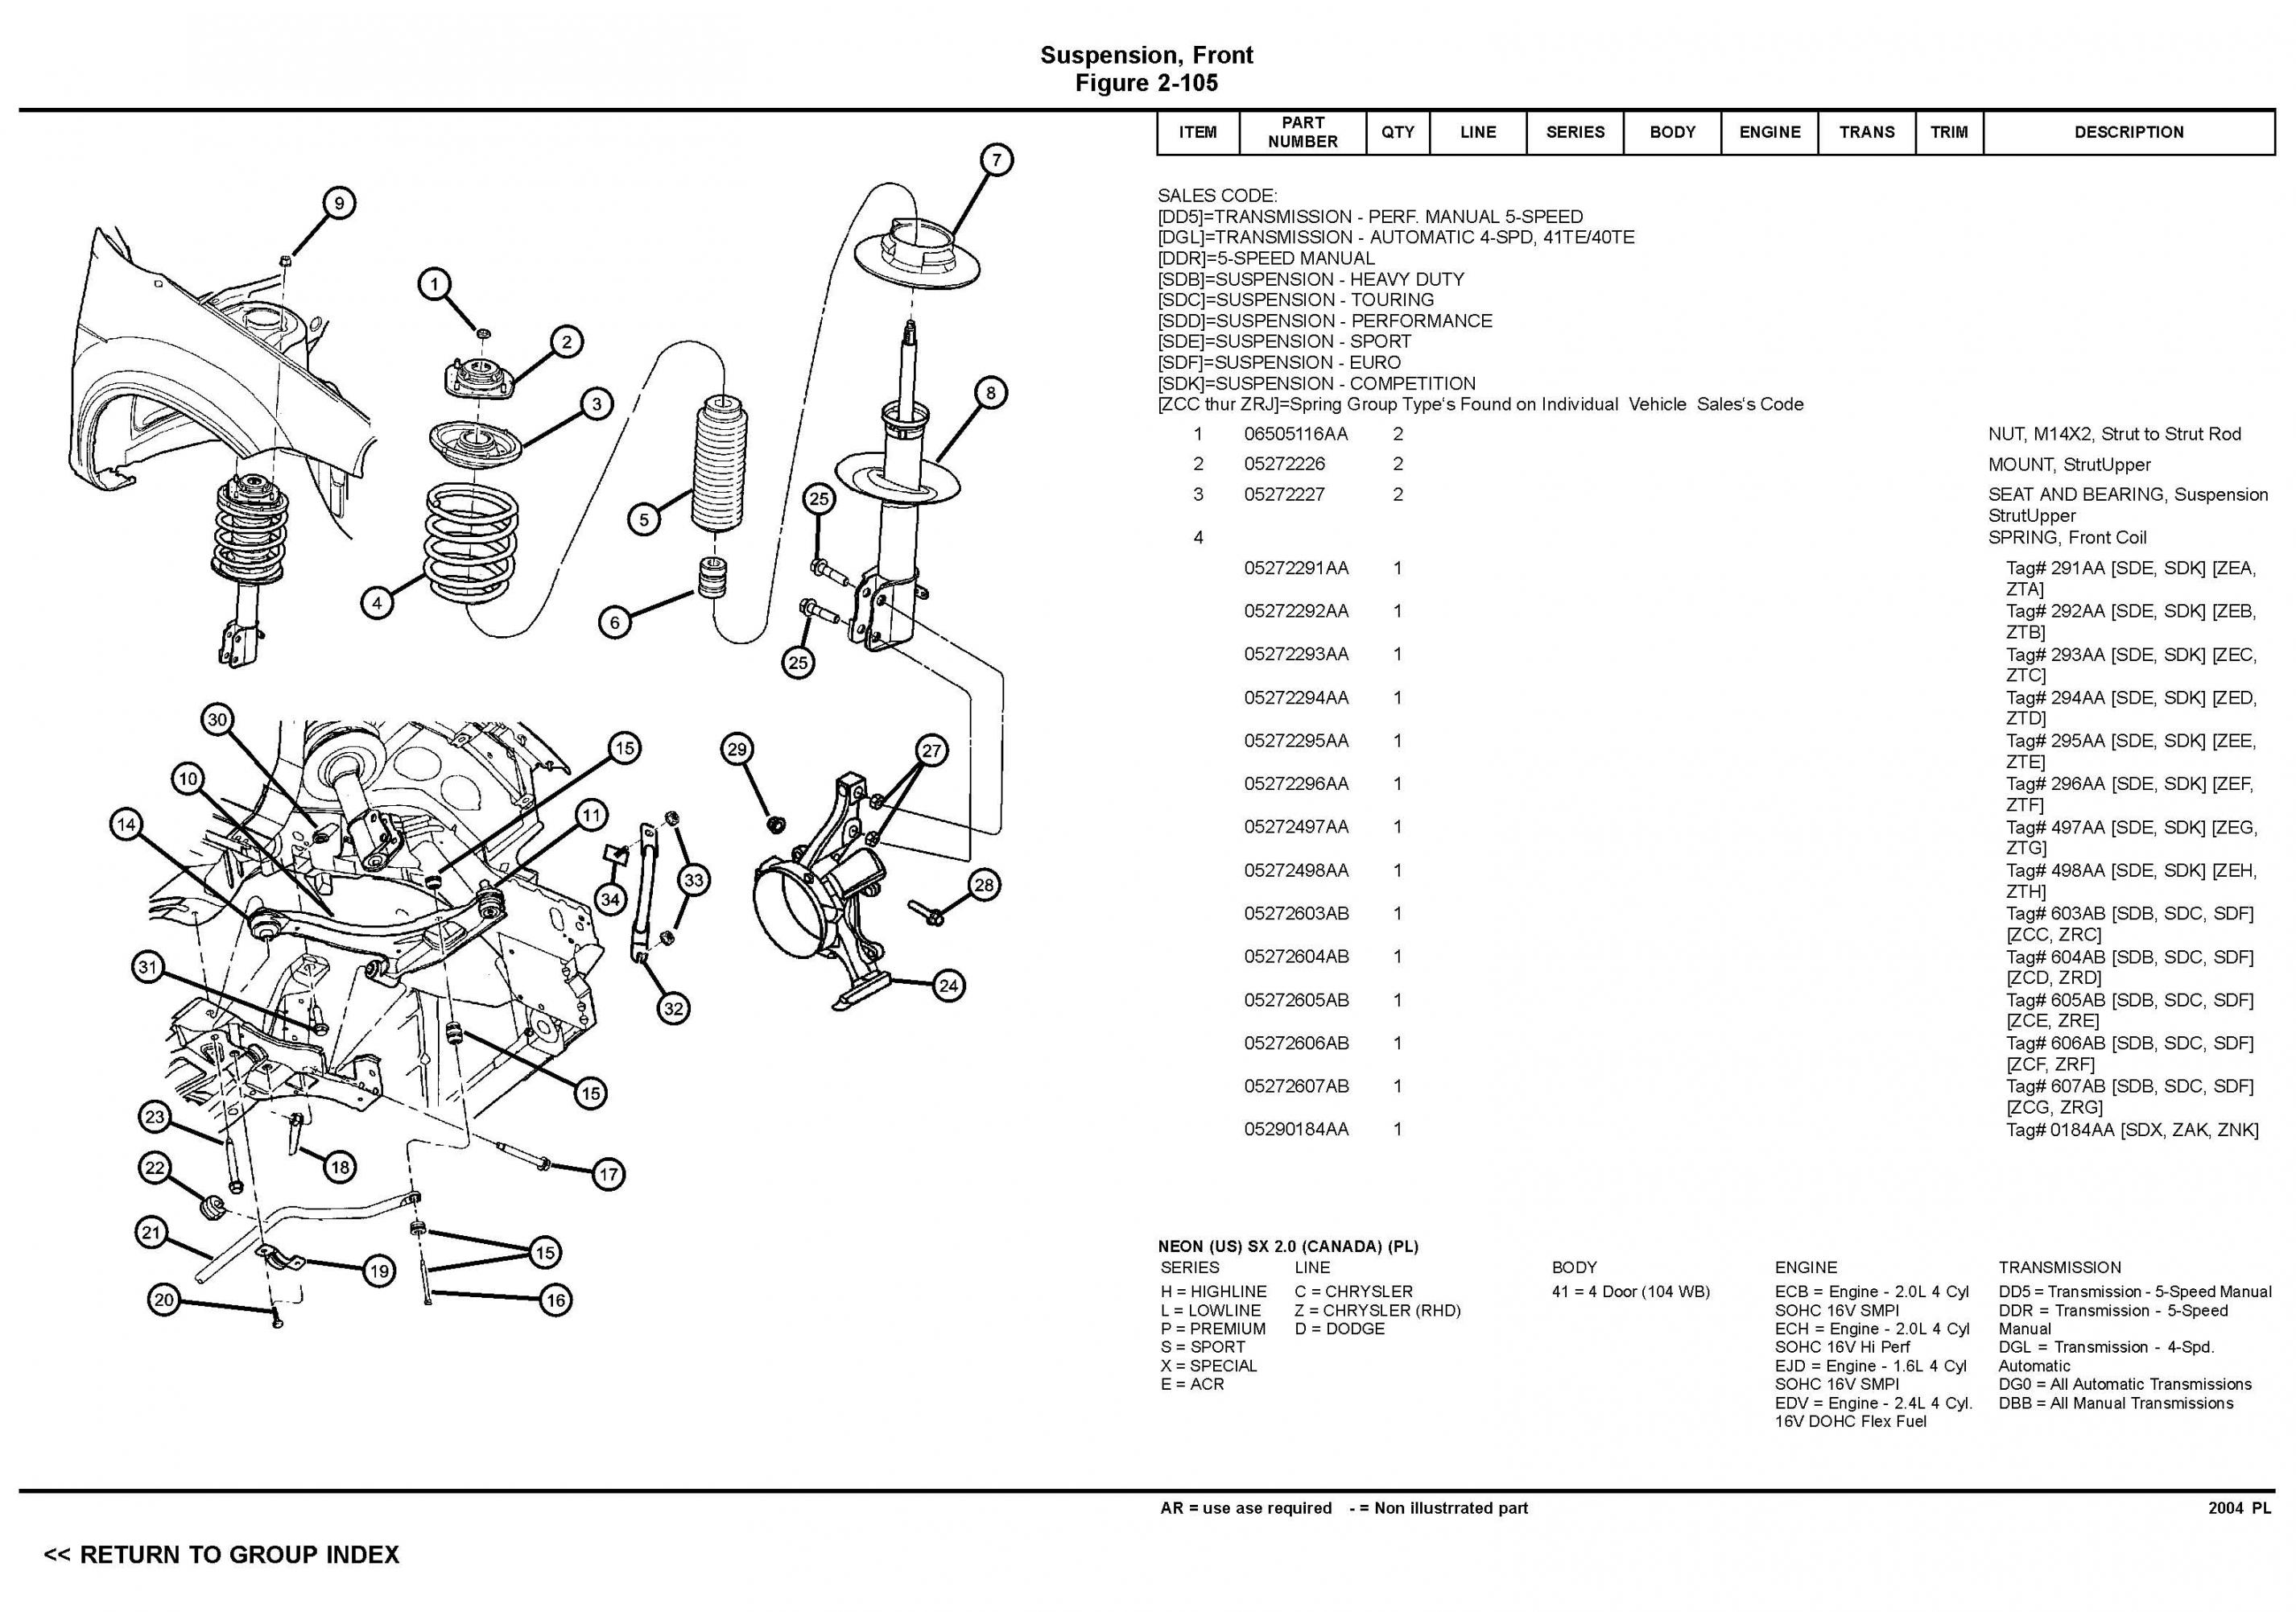 WRG-5568] Ram Srt 10 Fuse Box Diagram